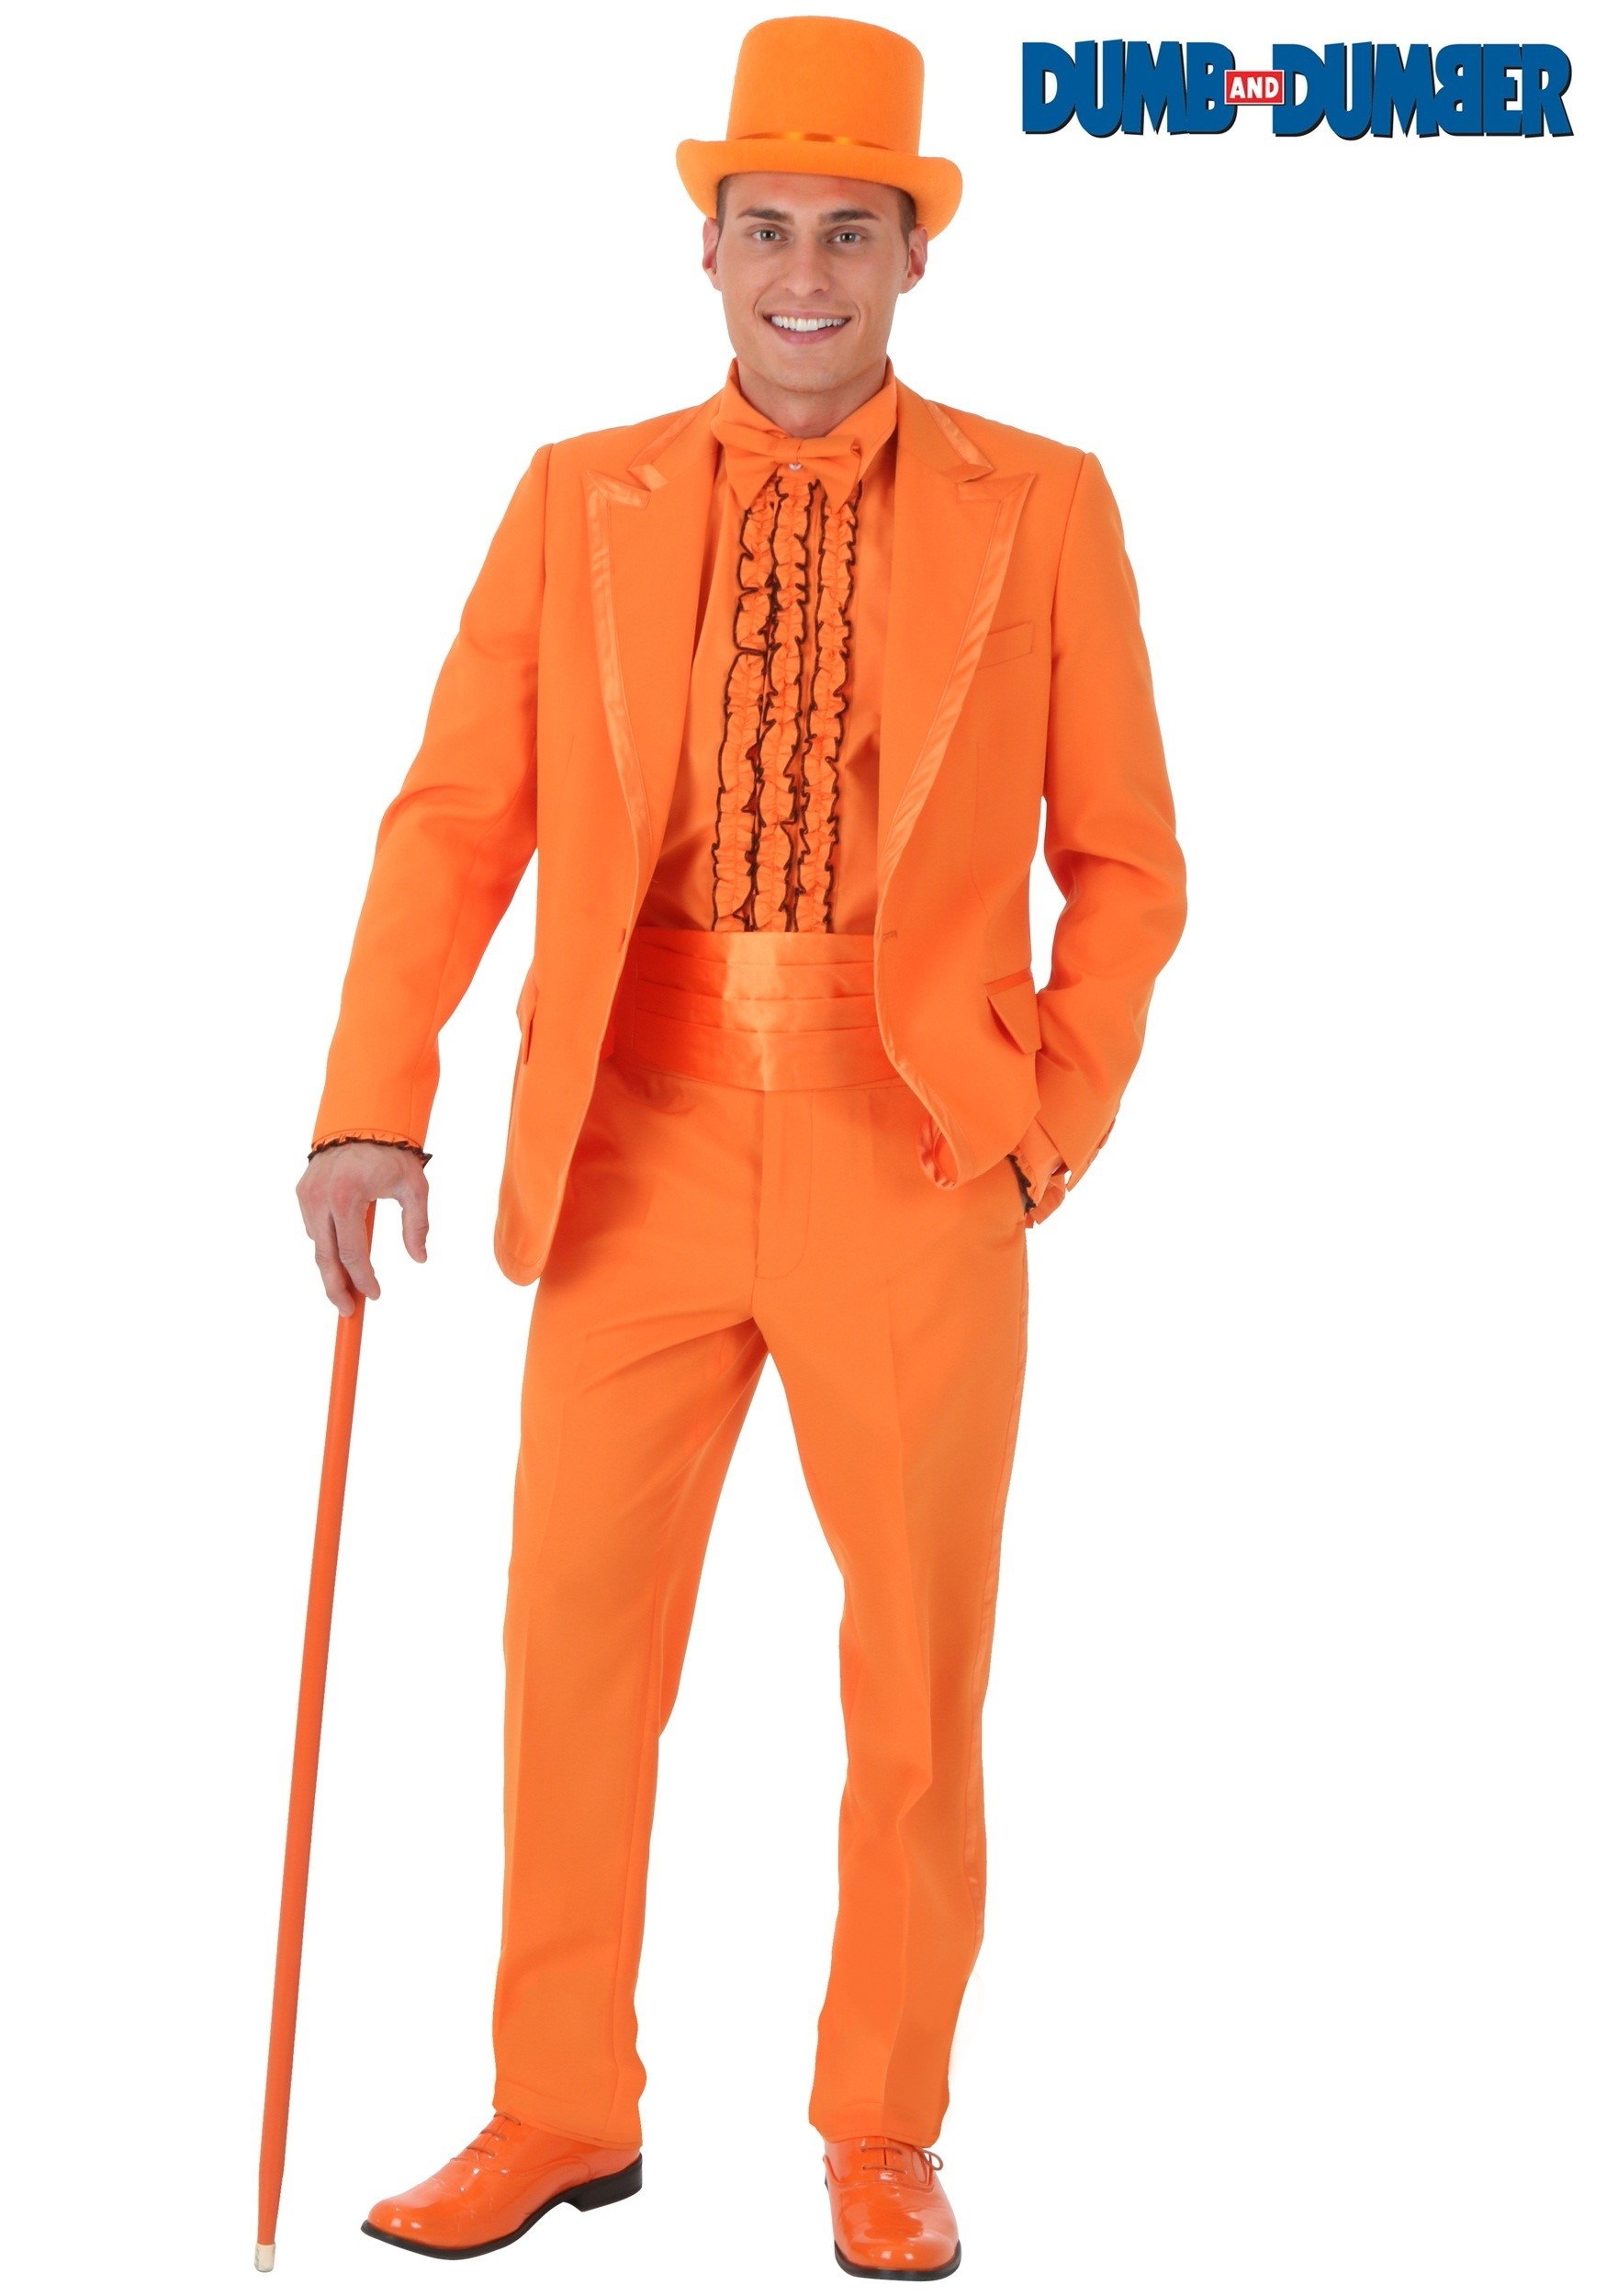 dumb and dumber costumes & suits - halloweencostumes